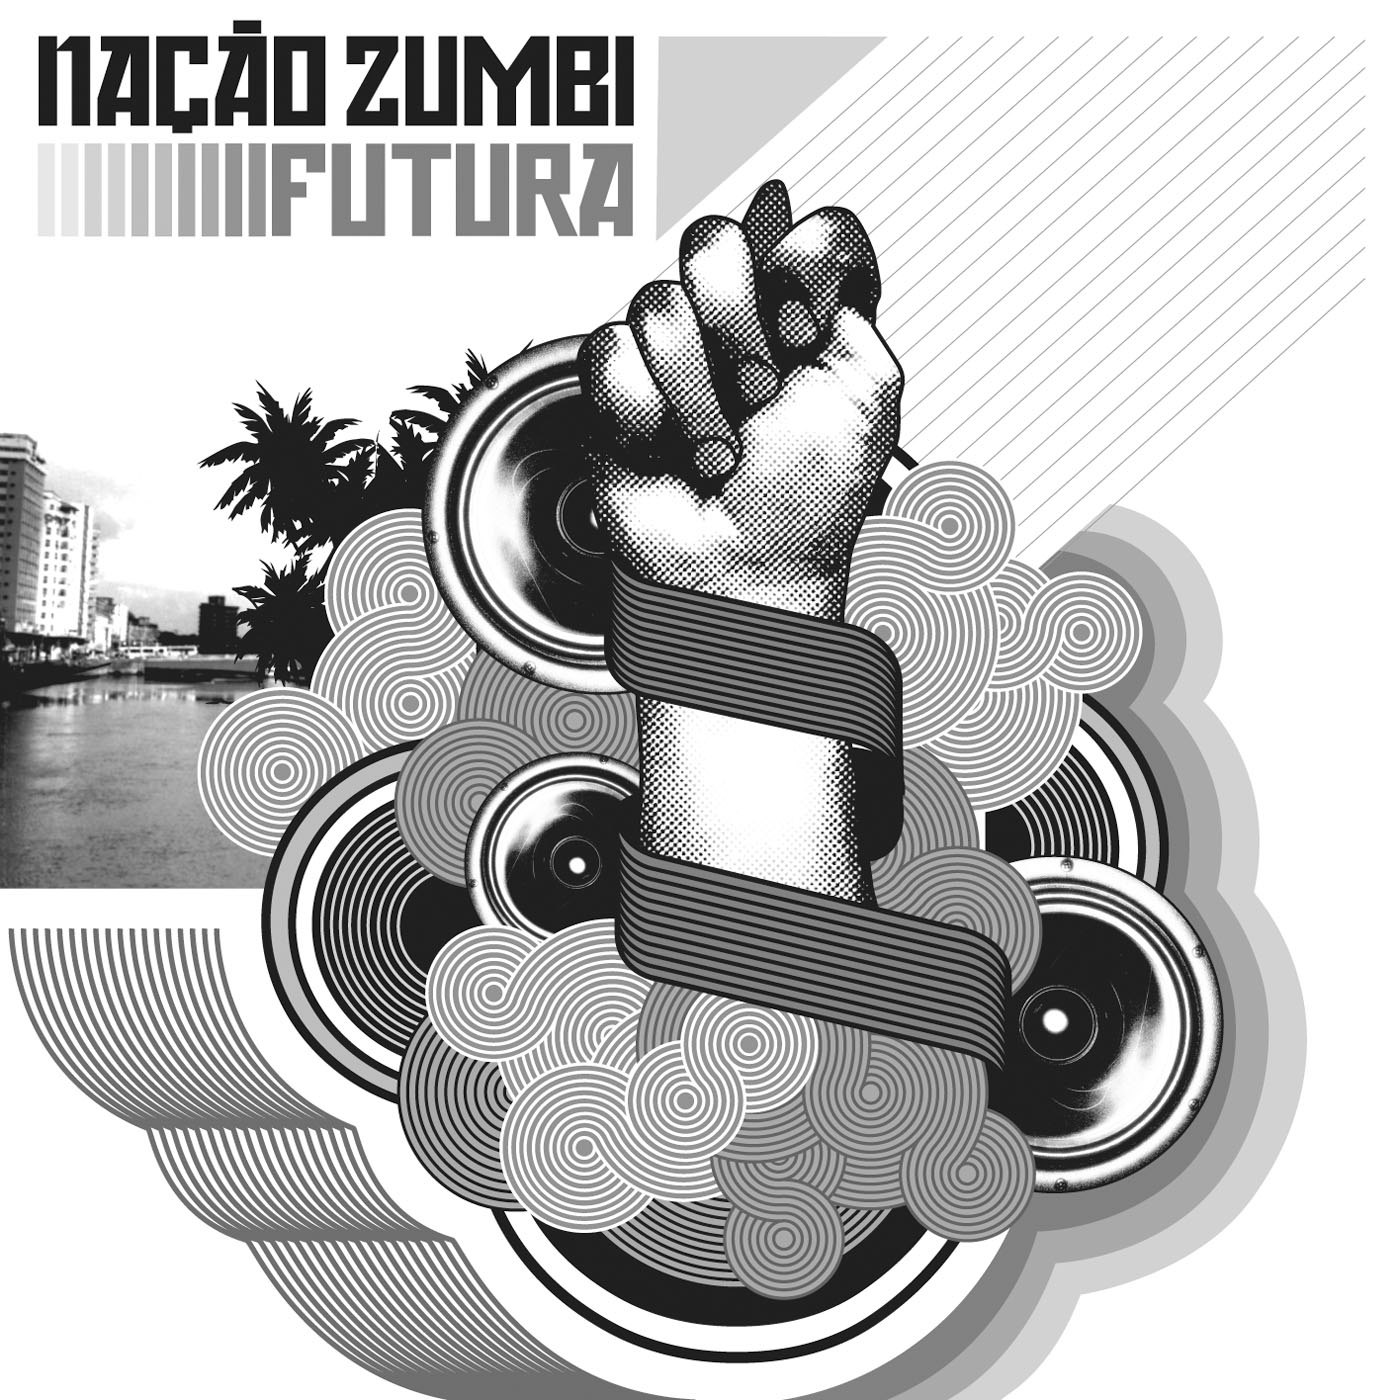 Futura by Nacao Zumbi cover